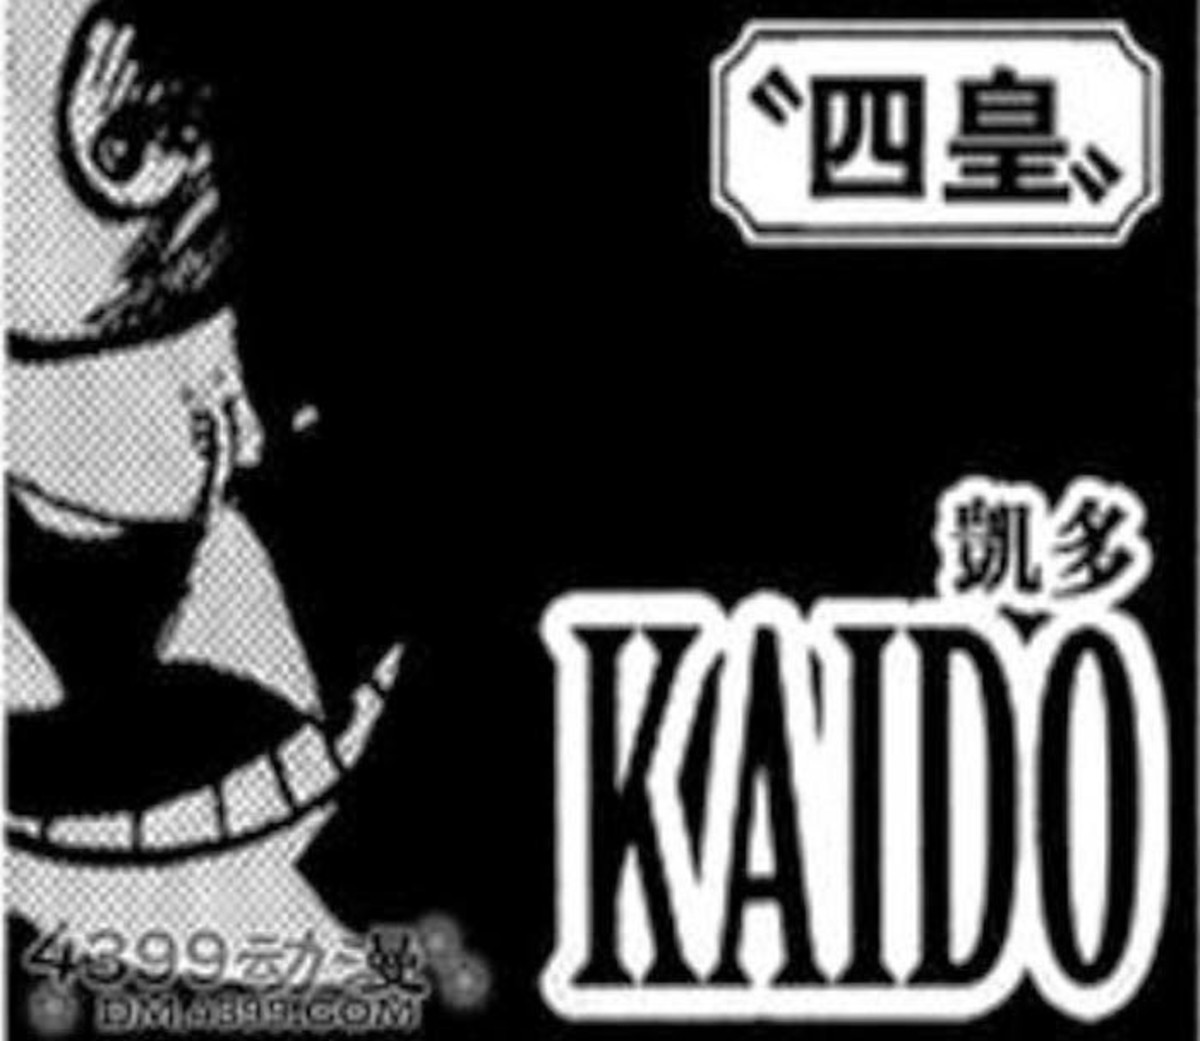 Kaido's first appearance when Garp talked about Yonko in One Piece chapter 432.